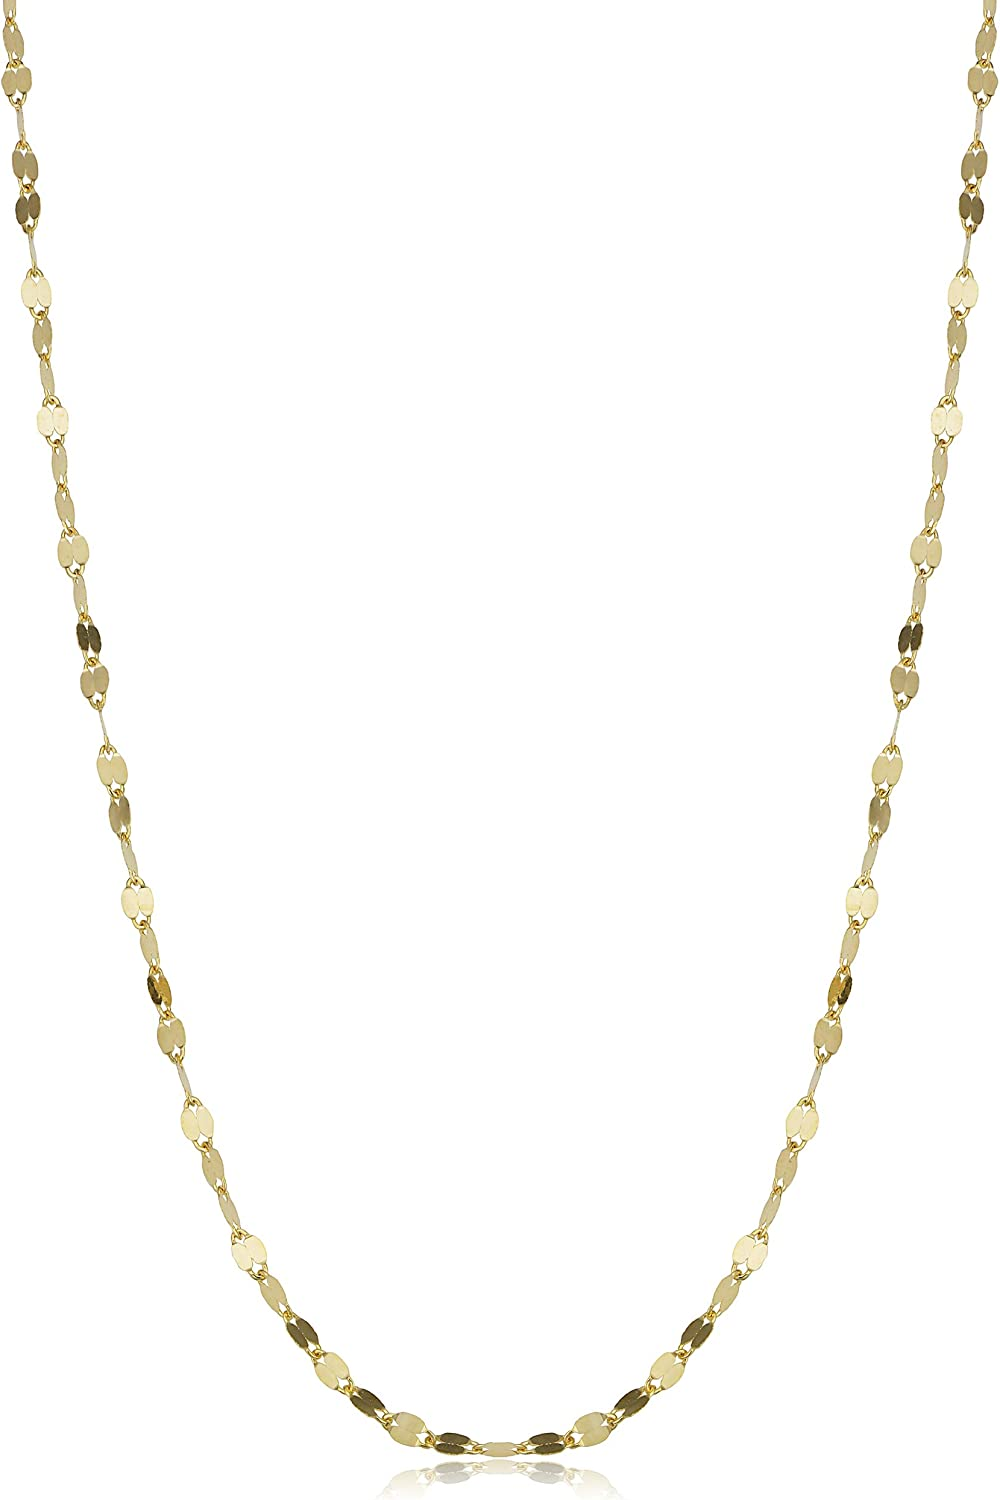 Kooljewelry 14k Solid Yellow Gold 1.9 mm Mirror Link Chain Necklace (16, 18, 20, 22, 24 or 30 inch)